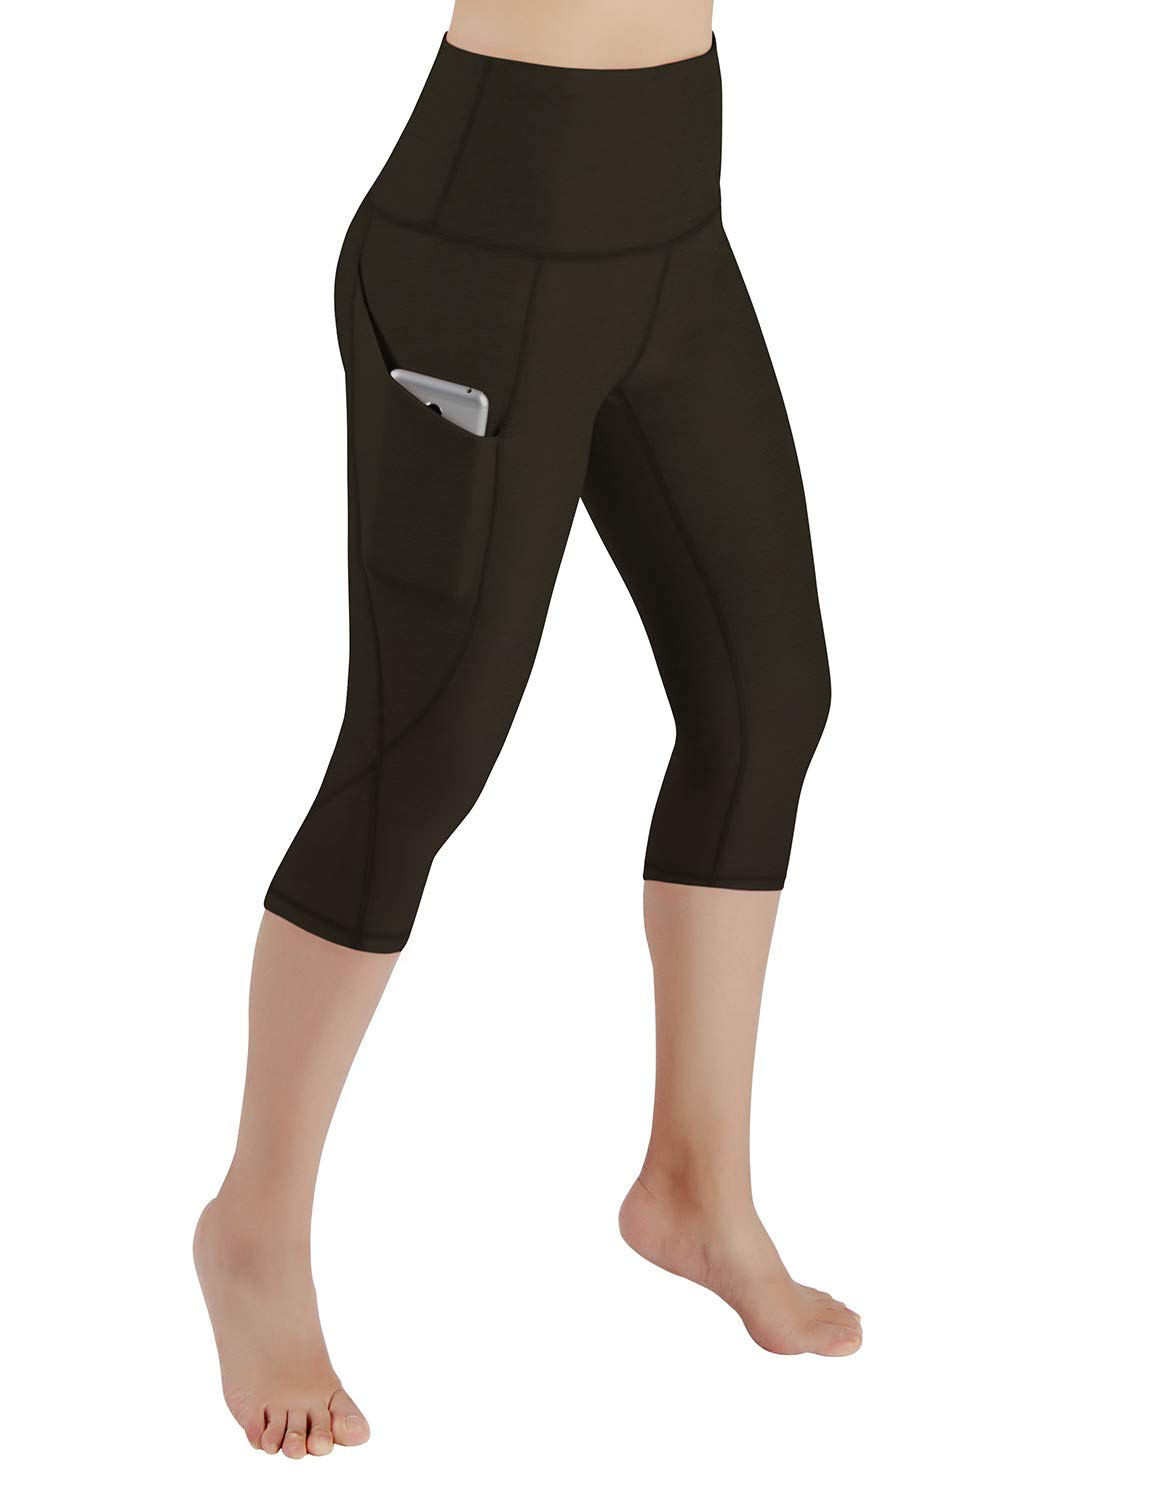 ODODOS Women's High Waist Yoga Capris with Pockets,Tummy Control,Workout Capris Running 4 Way Stretch Yoga Leggings with Pockets,Olive,Medium by ODODOS